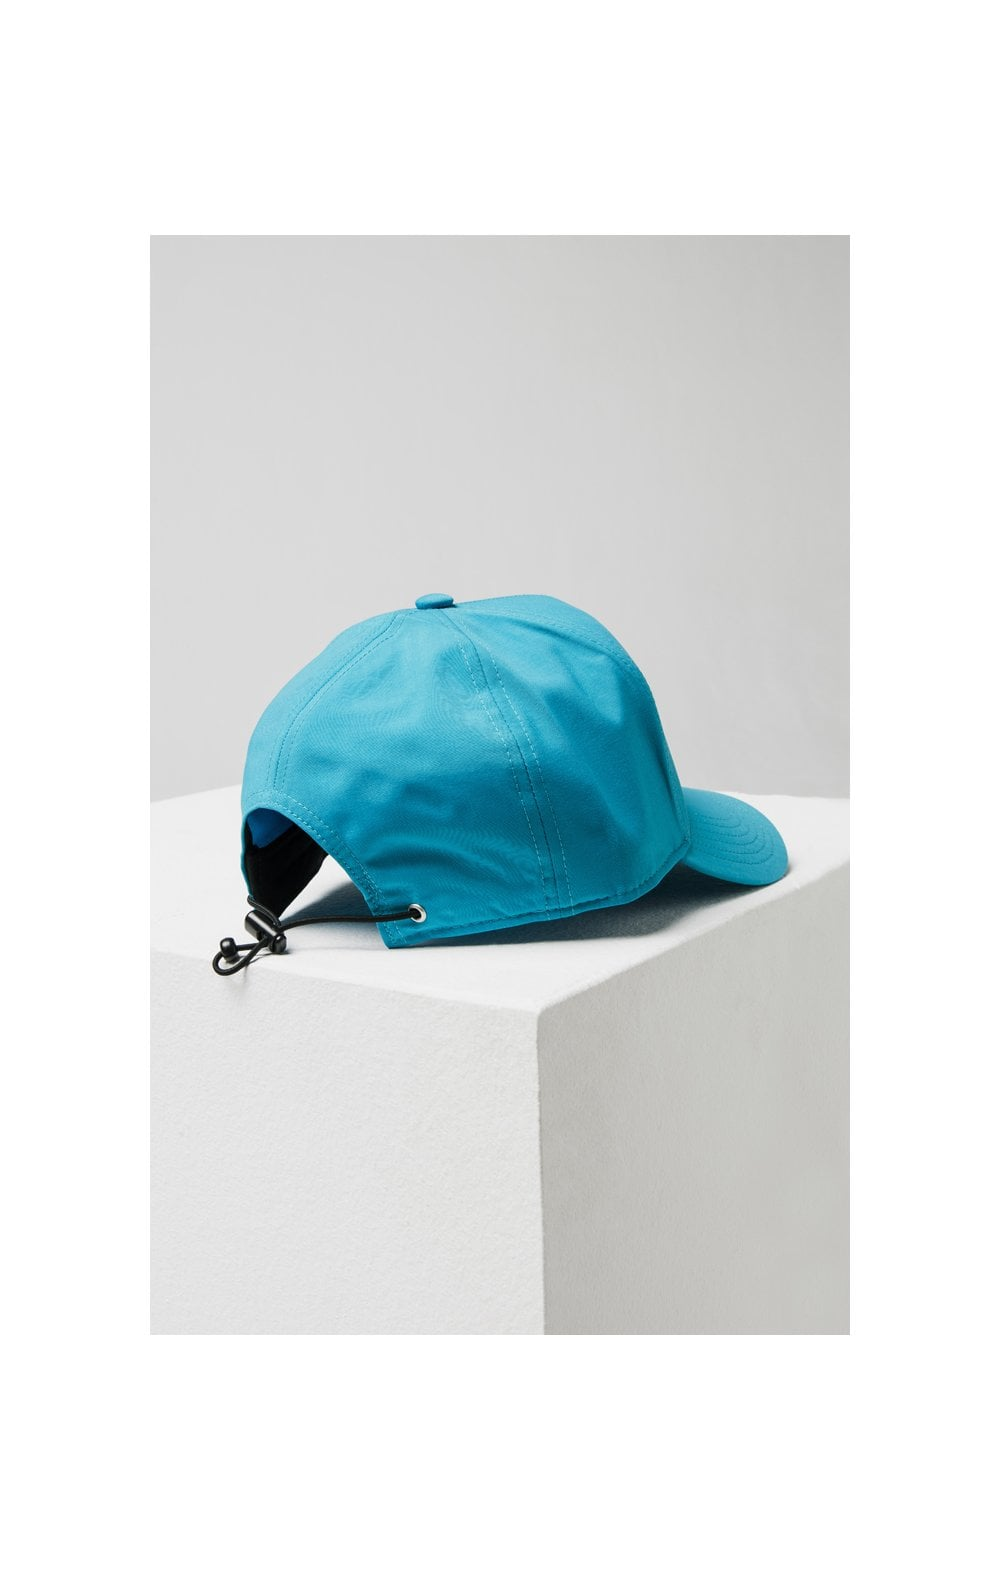 Load image into Gallery viewer, SikSilk Crushed Nylon Full Trucker - Teal (3)